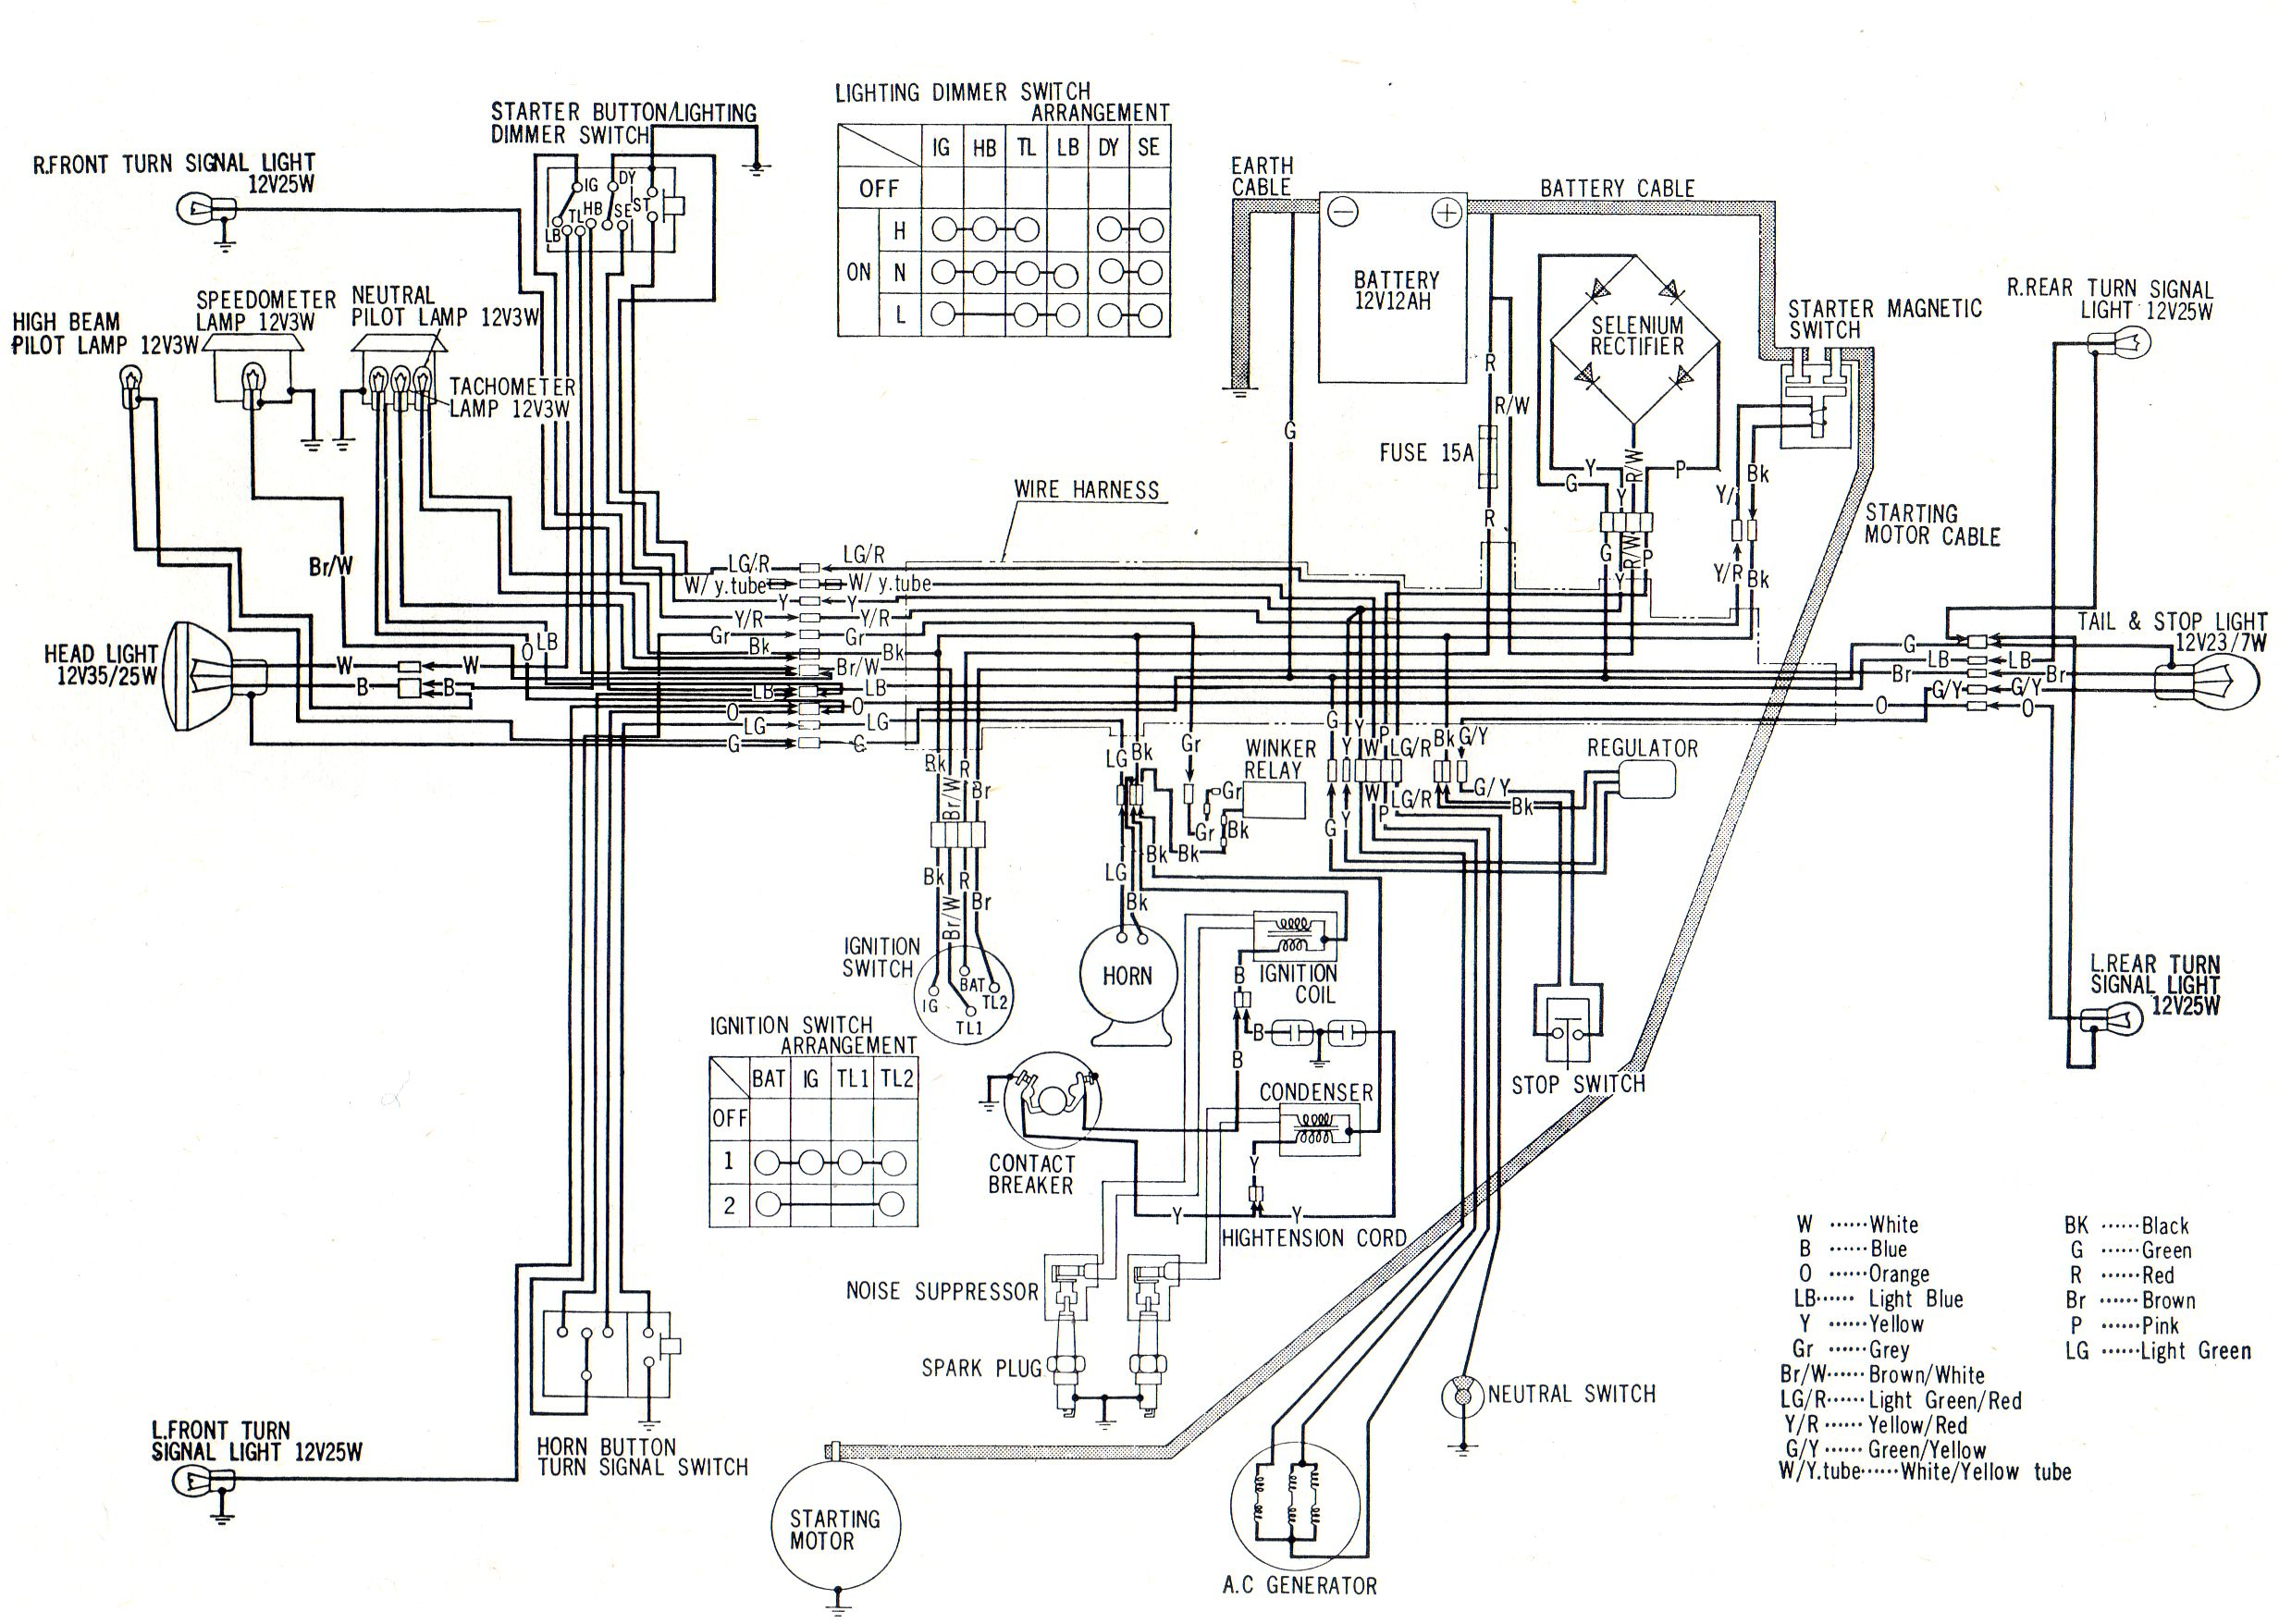 1965 Honda S90 Wiring Diagram Wire Data Schema Cl77 Turn Signals Rh Banyan Palace Com 1966 1970